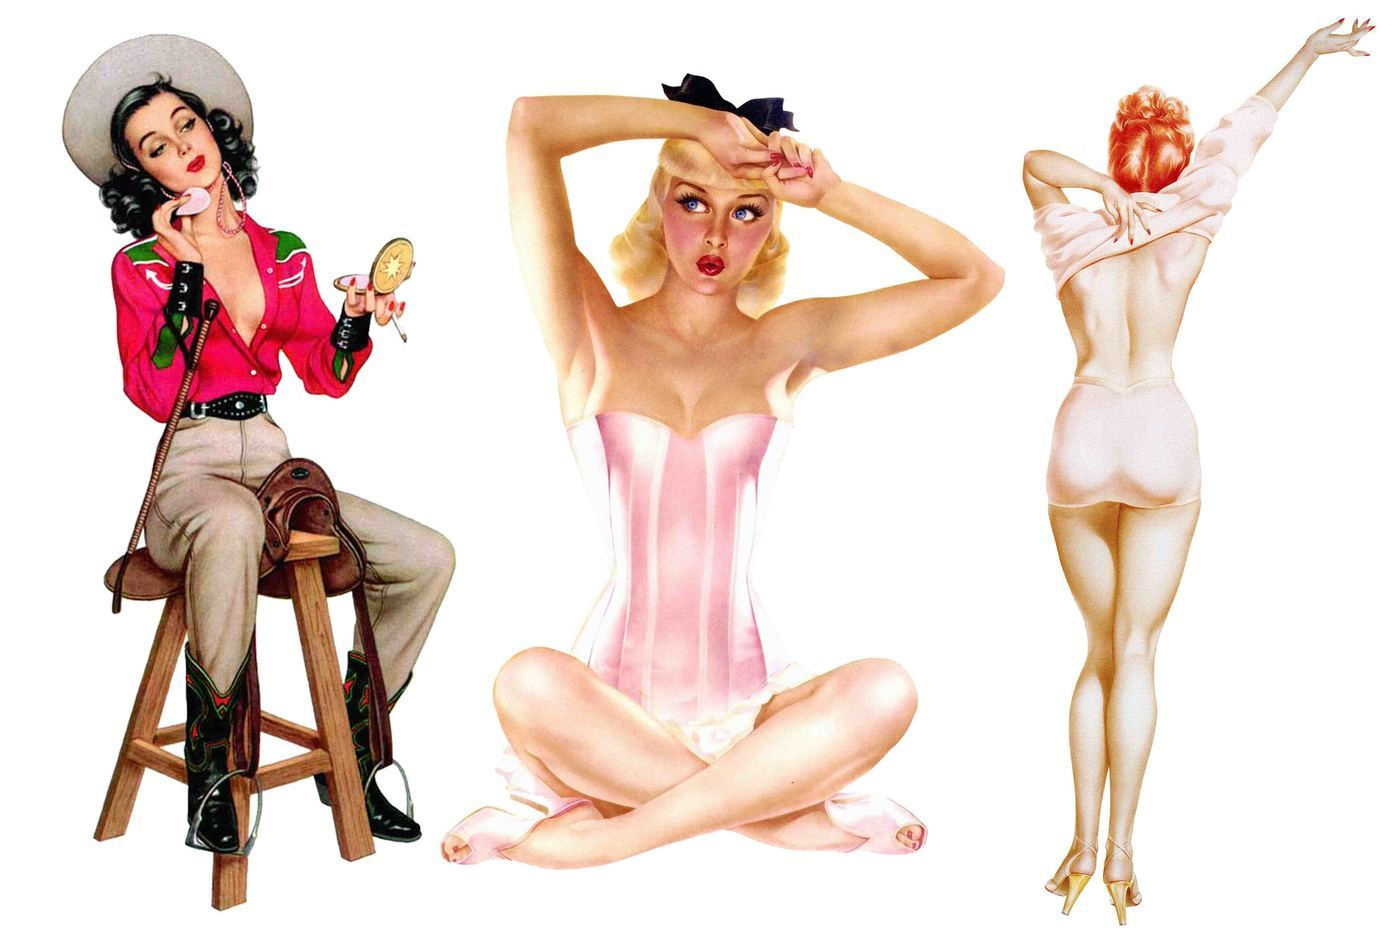 Pinup girls clipart 6 » Clipart Portal.